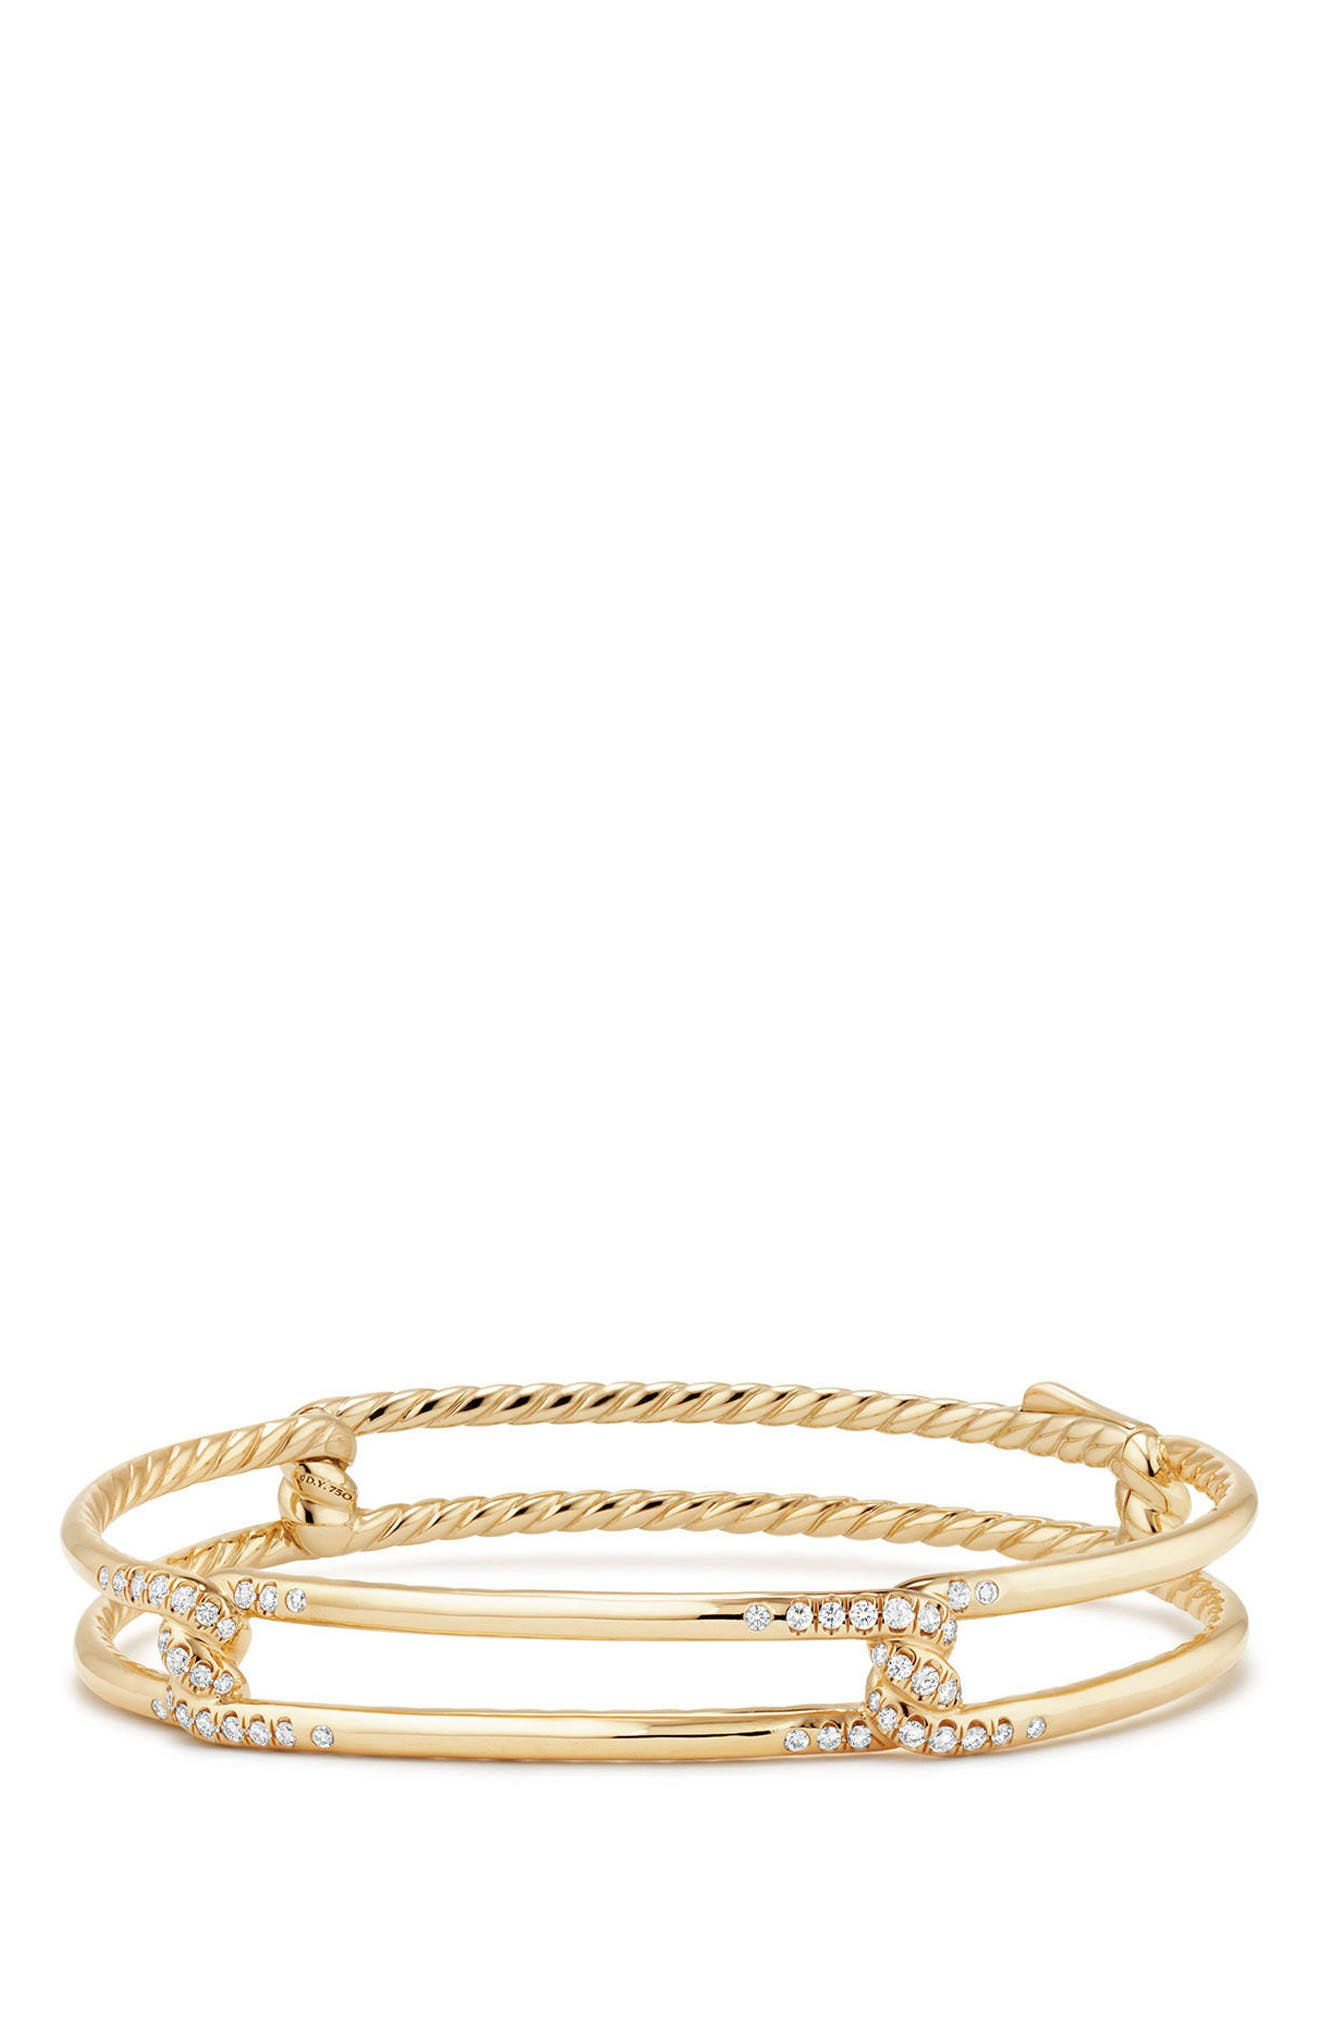 Continuance Bracelet with Diamond in 18K Gold,                             Main thumbnail 1, color,                             YELLOW GOLD